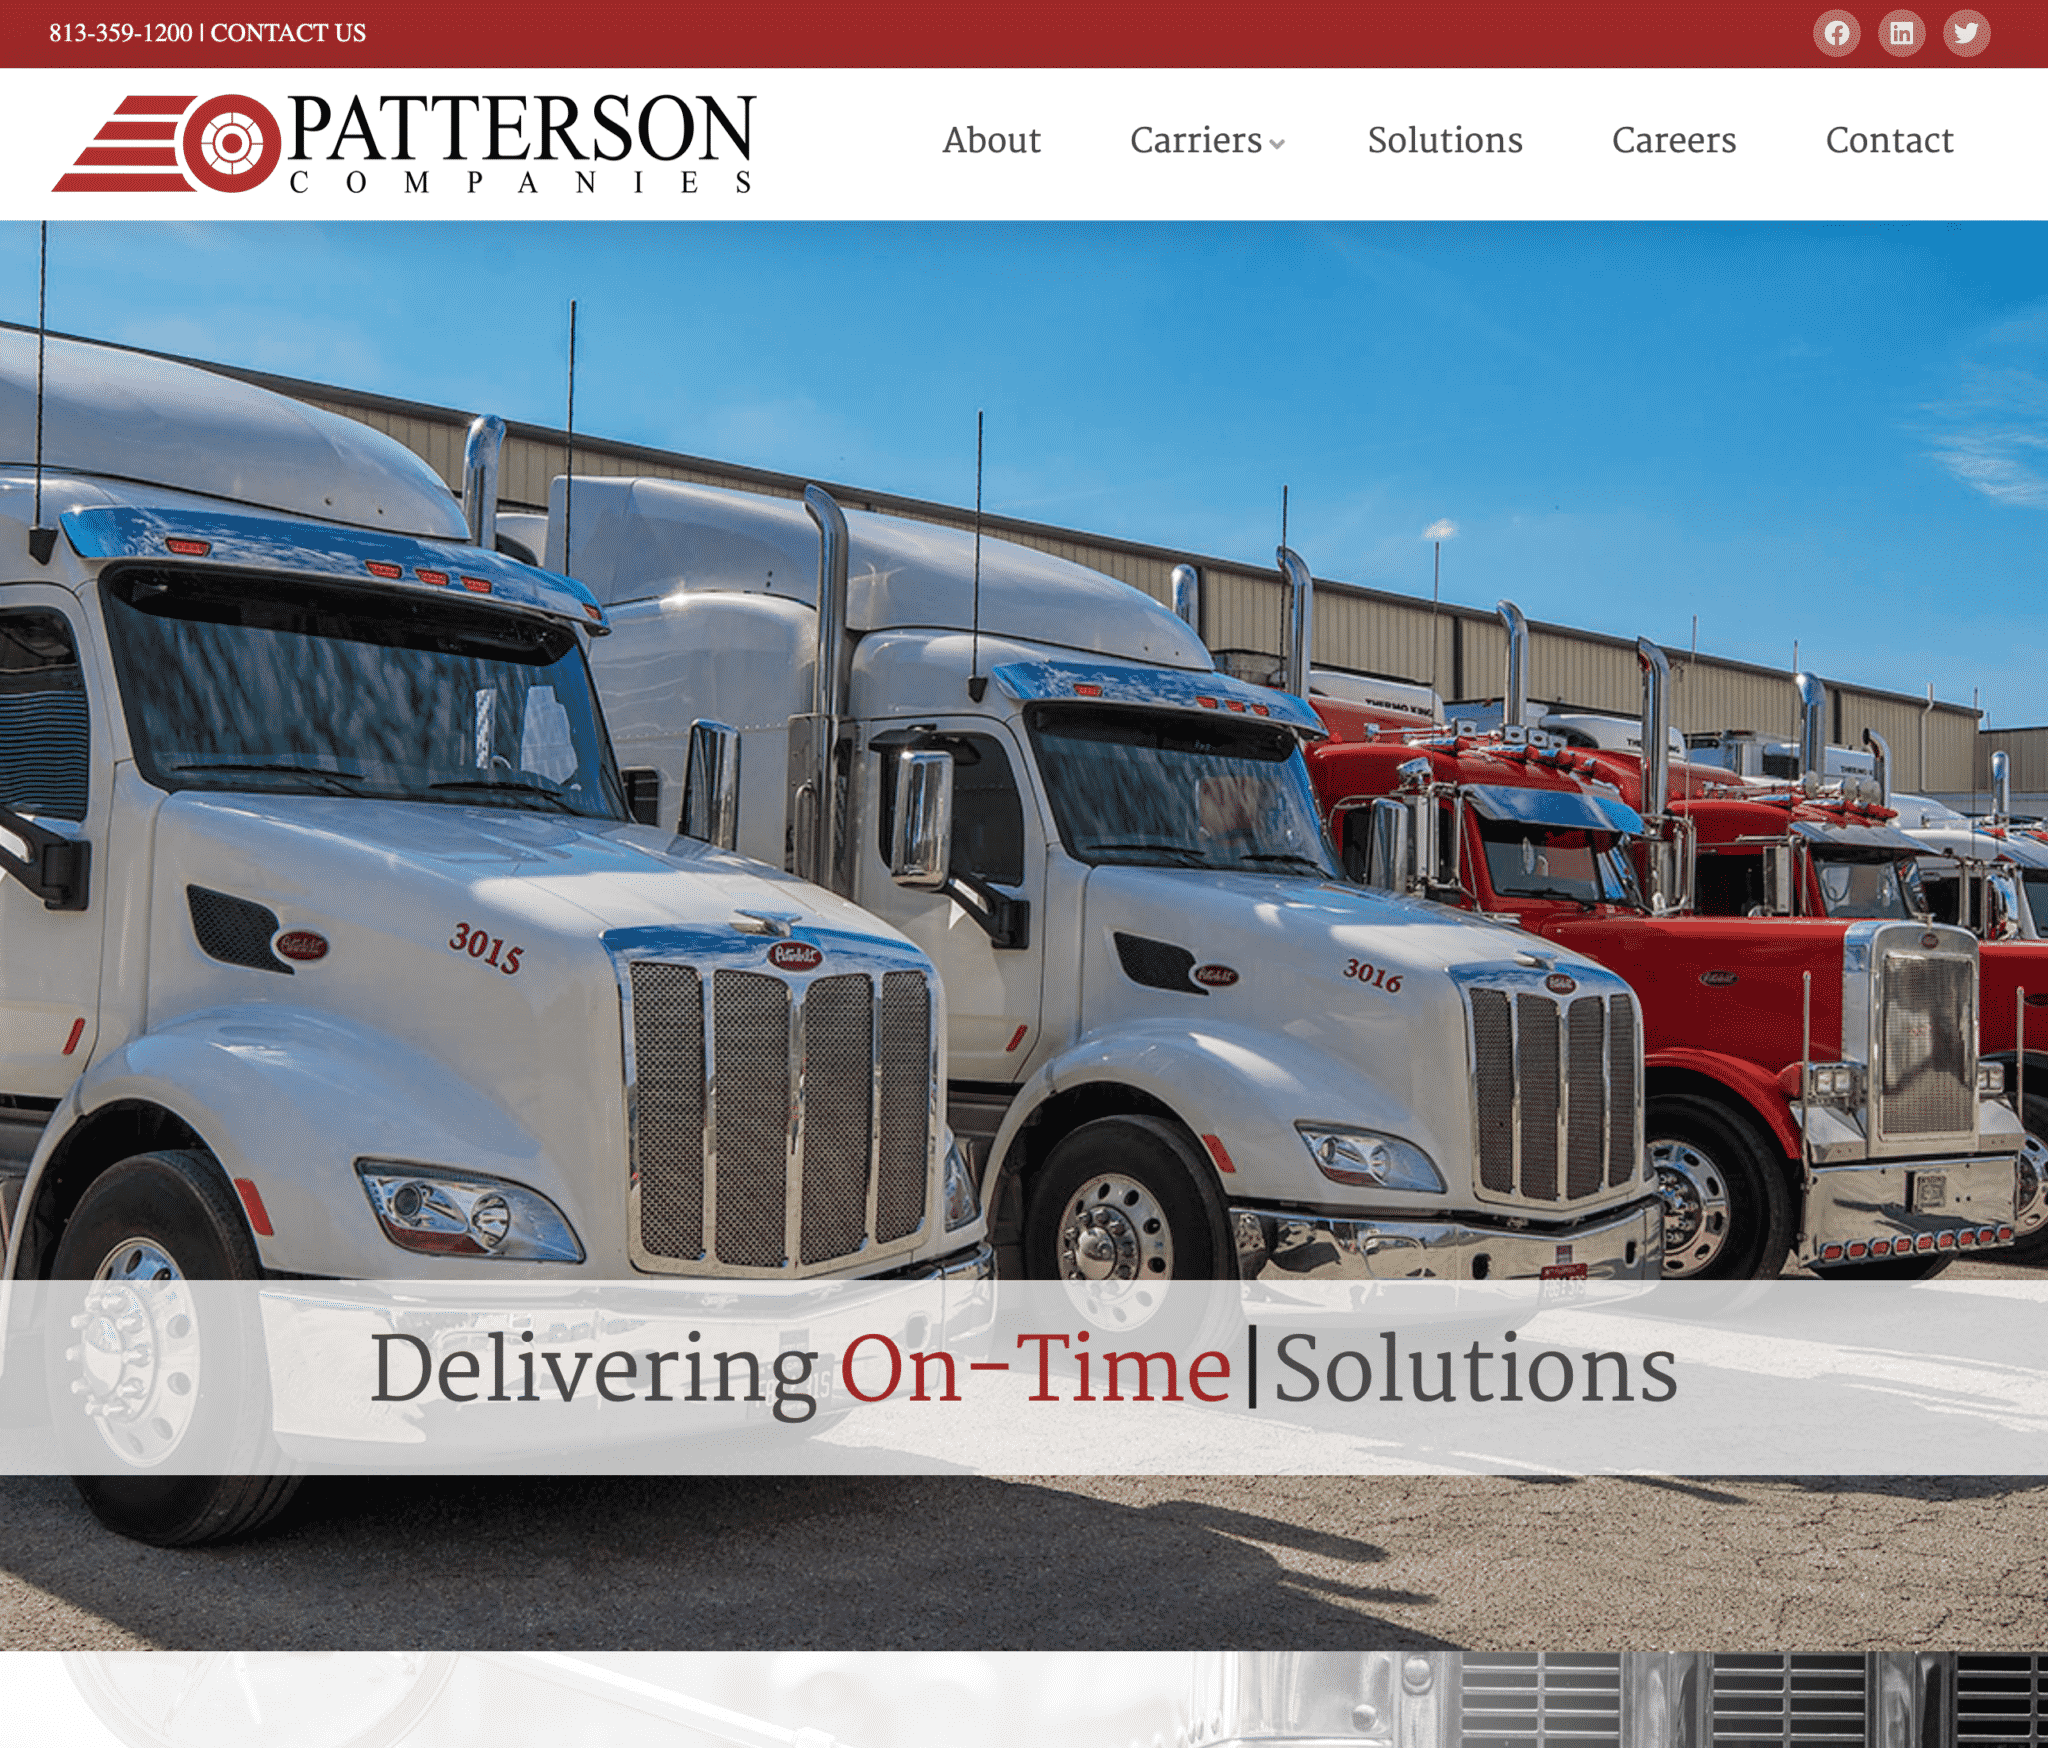 """Featured image for """"Patterson Companies"""""""